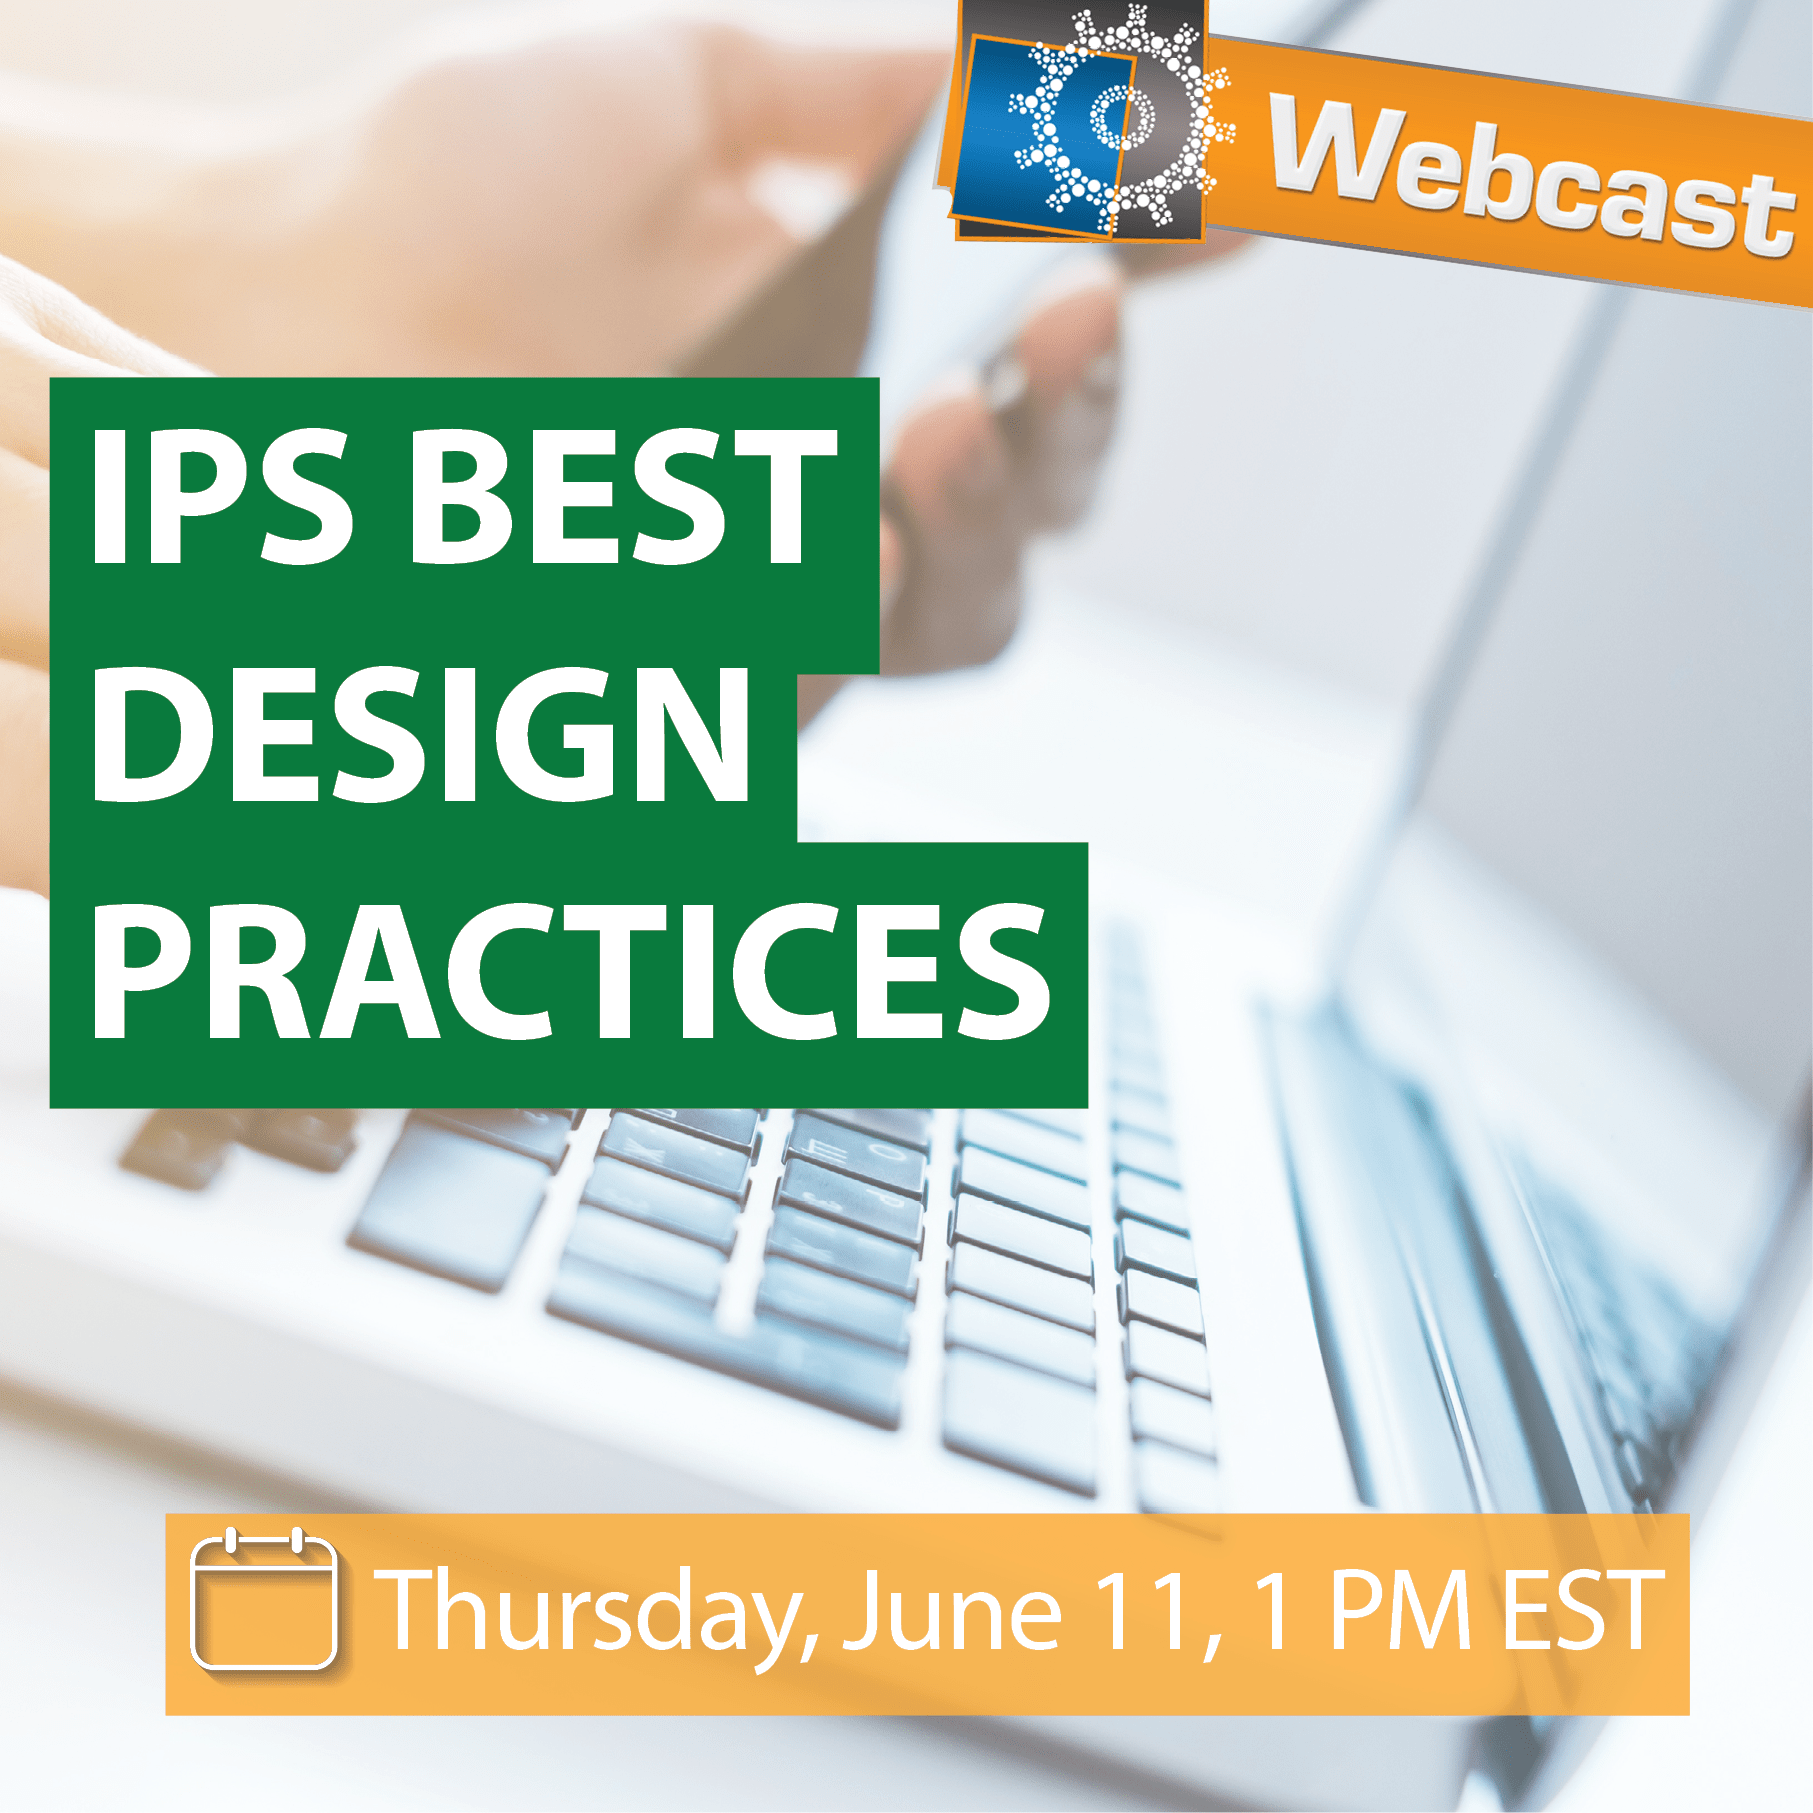 Webcast: IPS Best Design Practices